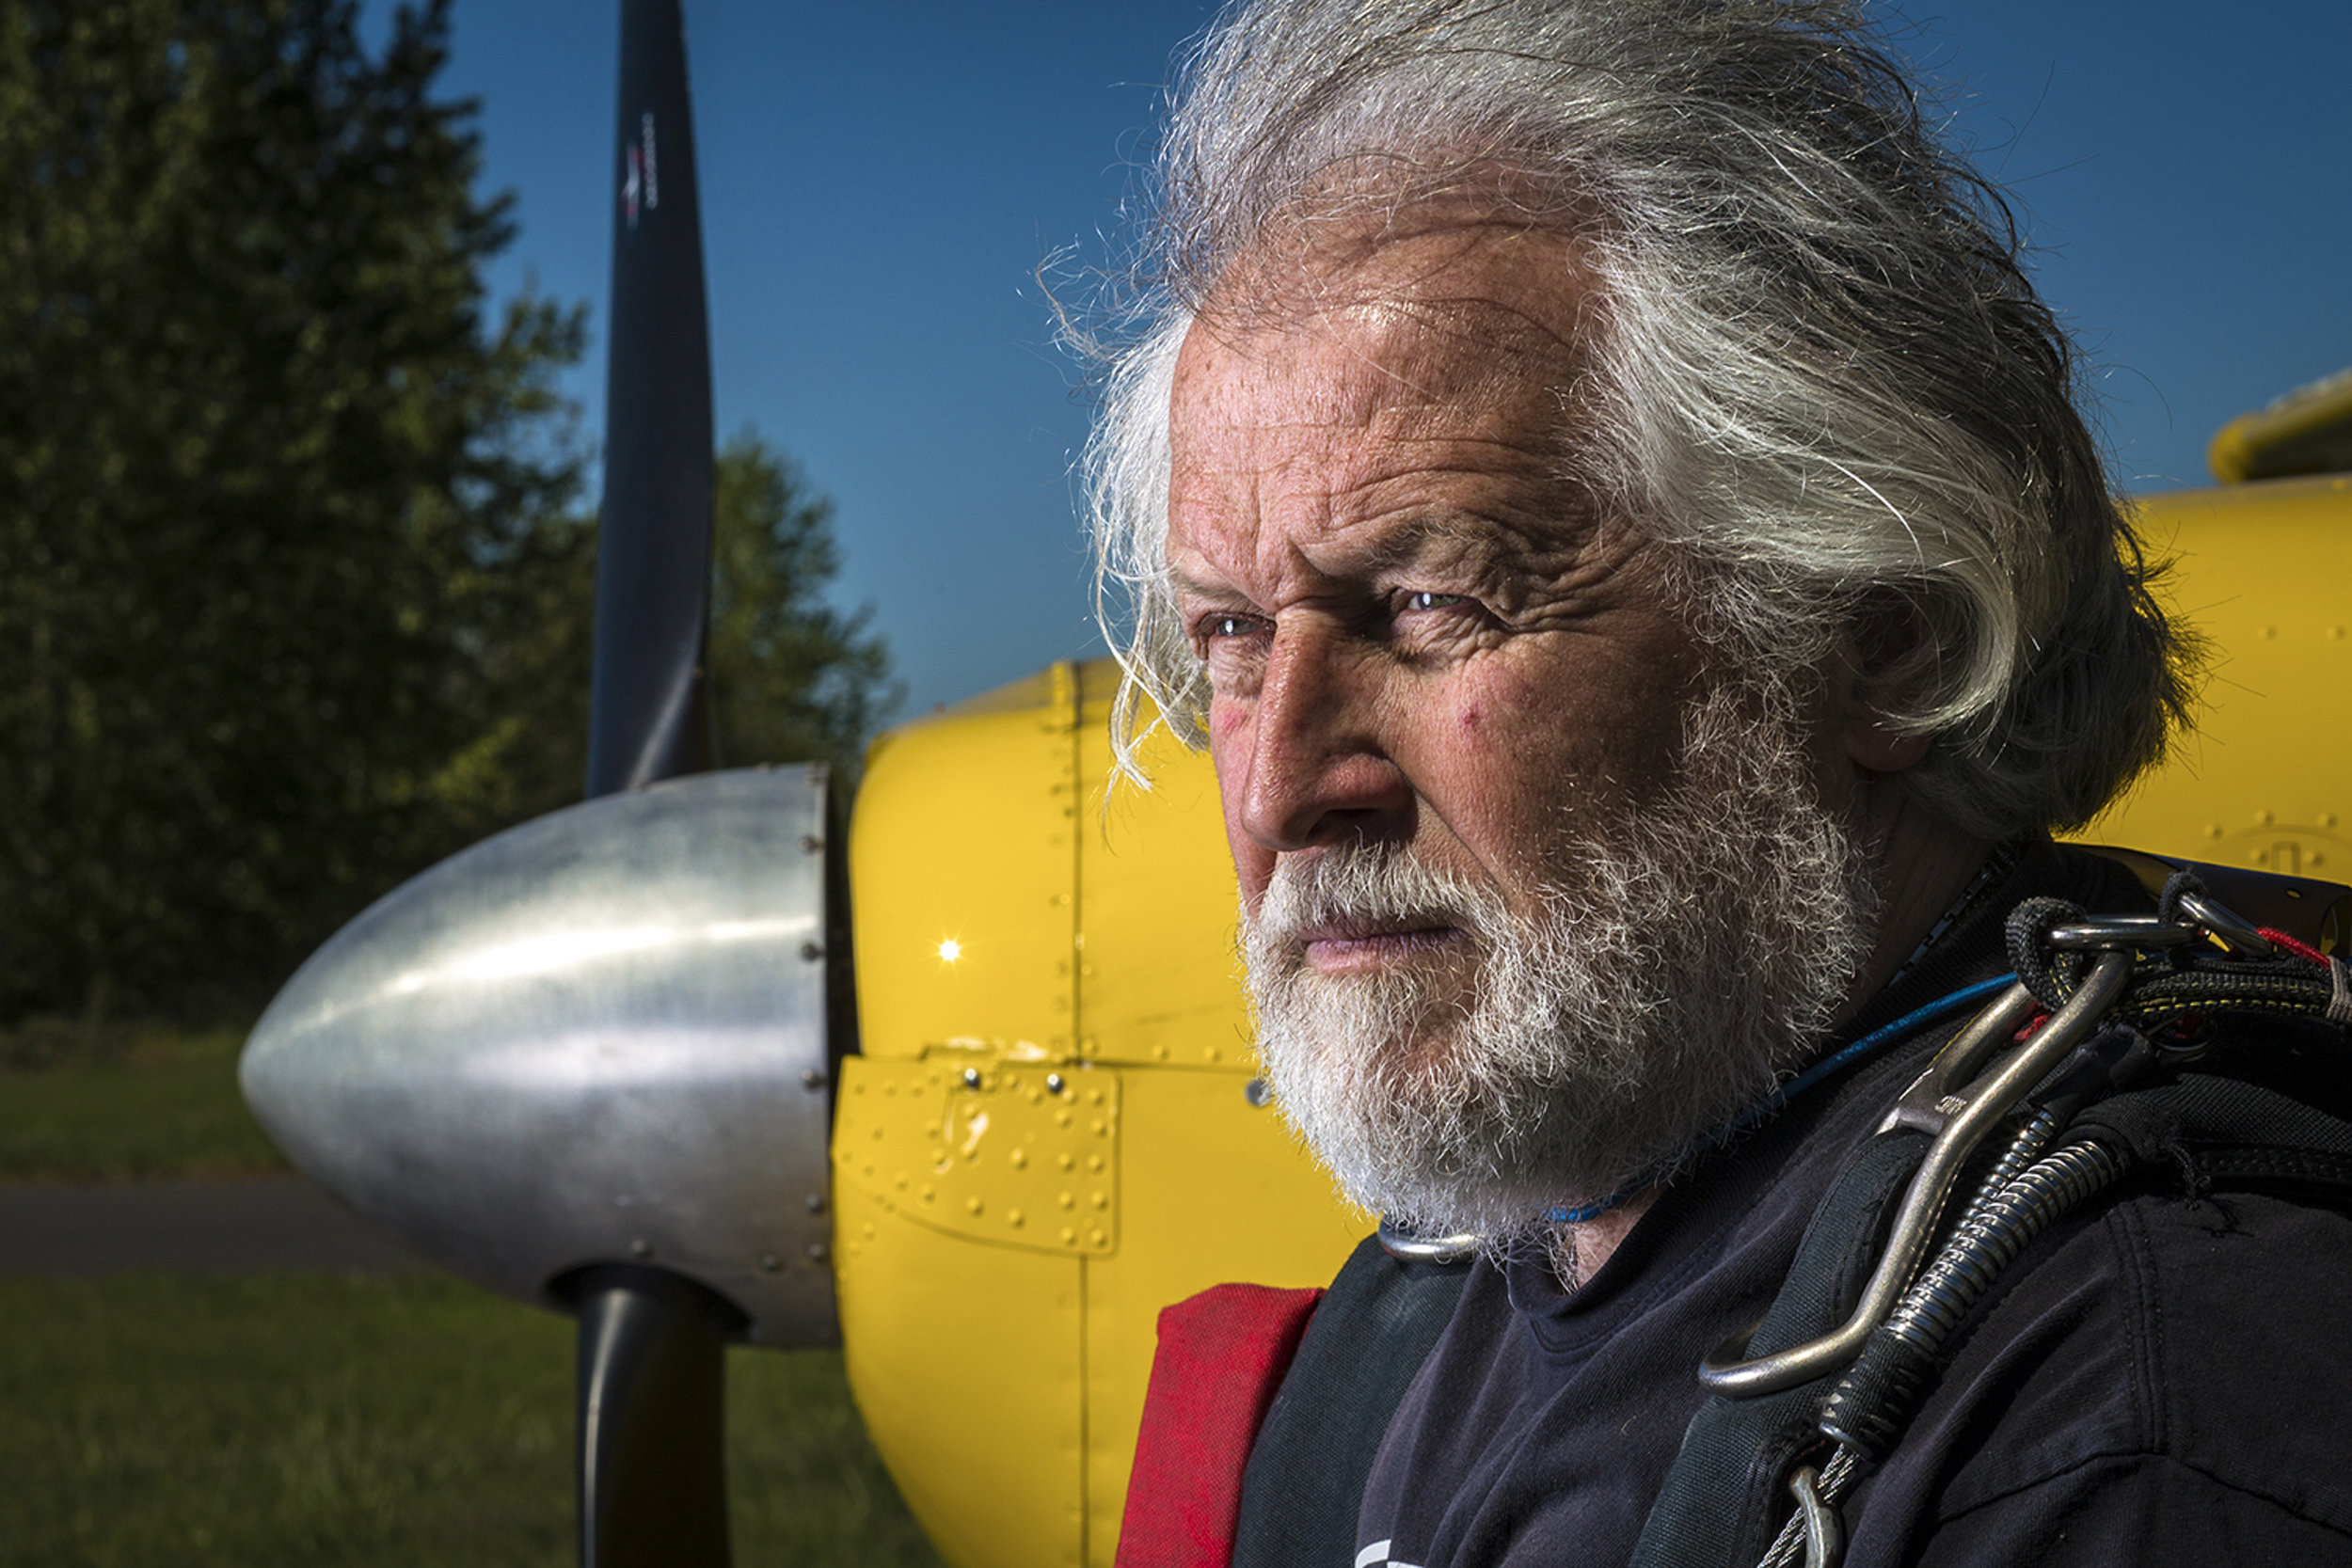 Owner of Eugene Skydivers, Urban Moore stands in front of one of the three '50s Cessnas his company owns at the Creswell Airport in Oregon, April 17, 2015. At age 65, Moore still skydives multiple times a day during the jump season and teaches new jumpers looking to get their licenses.